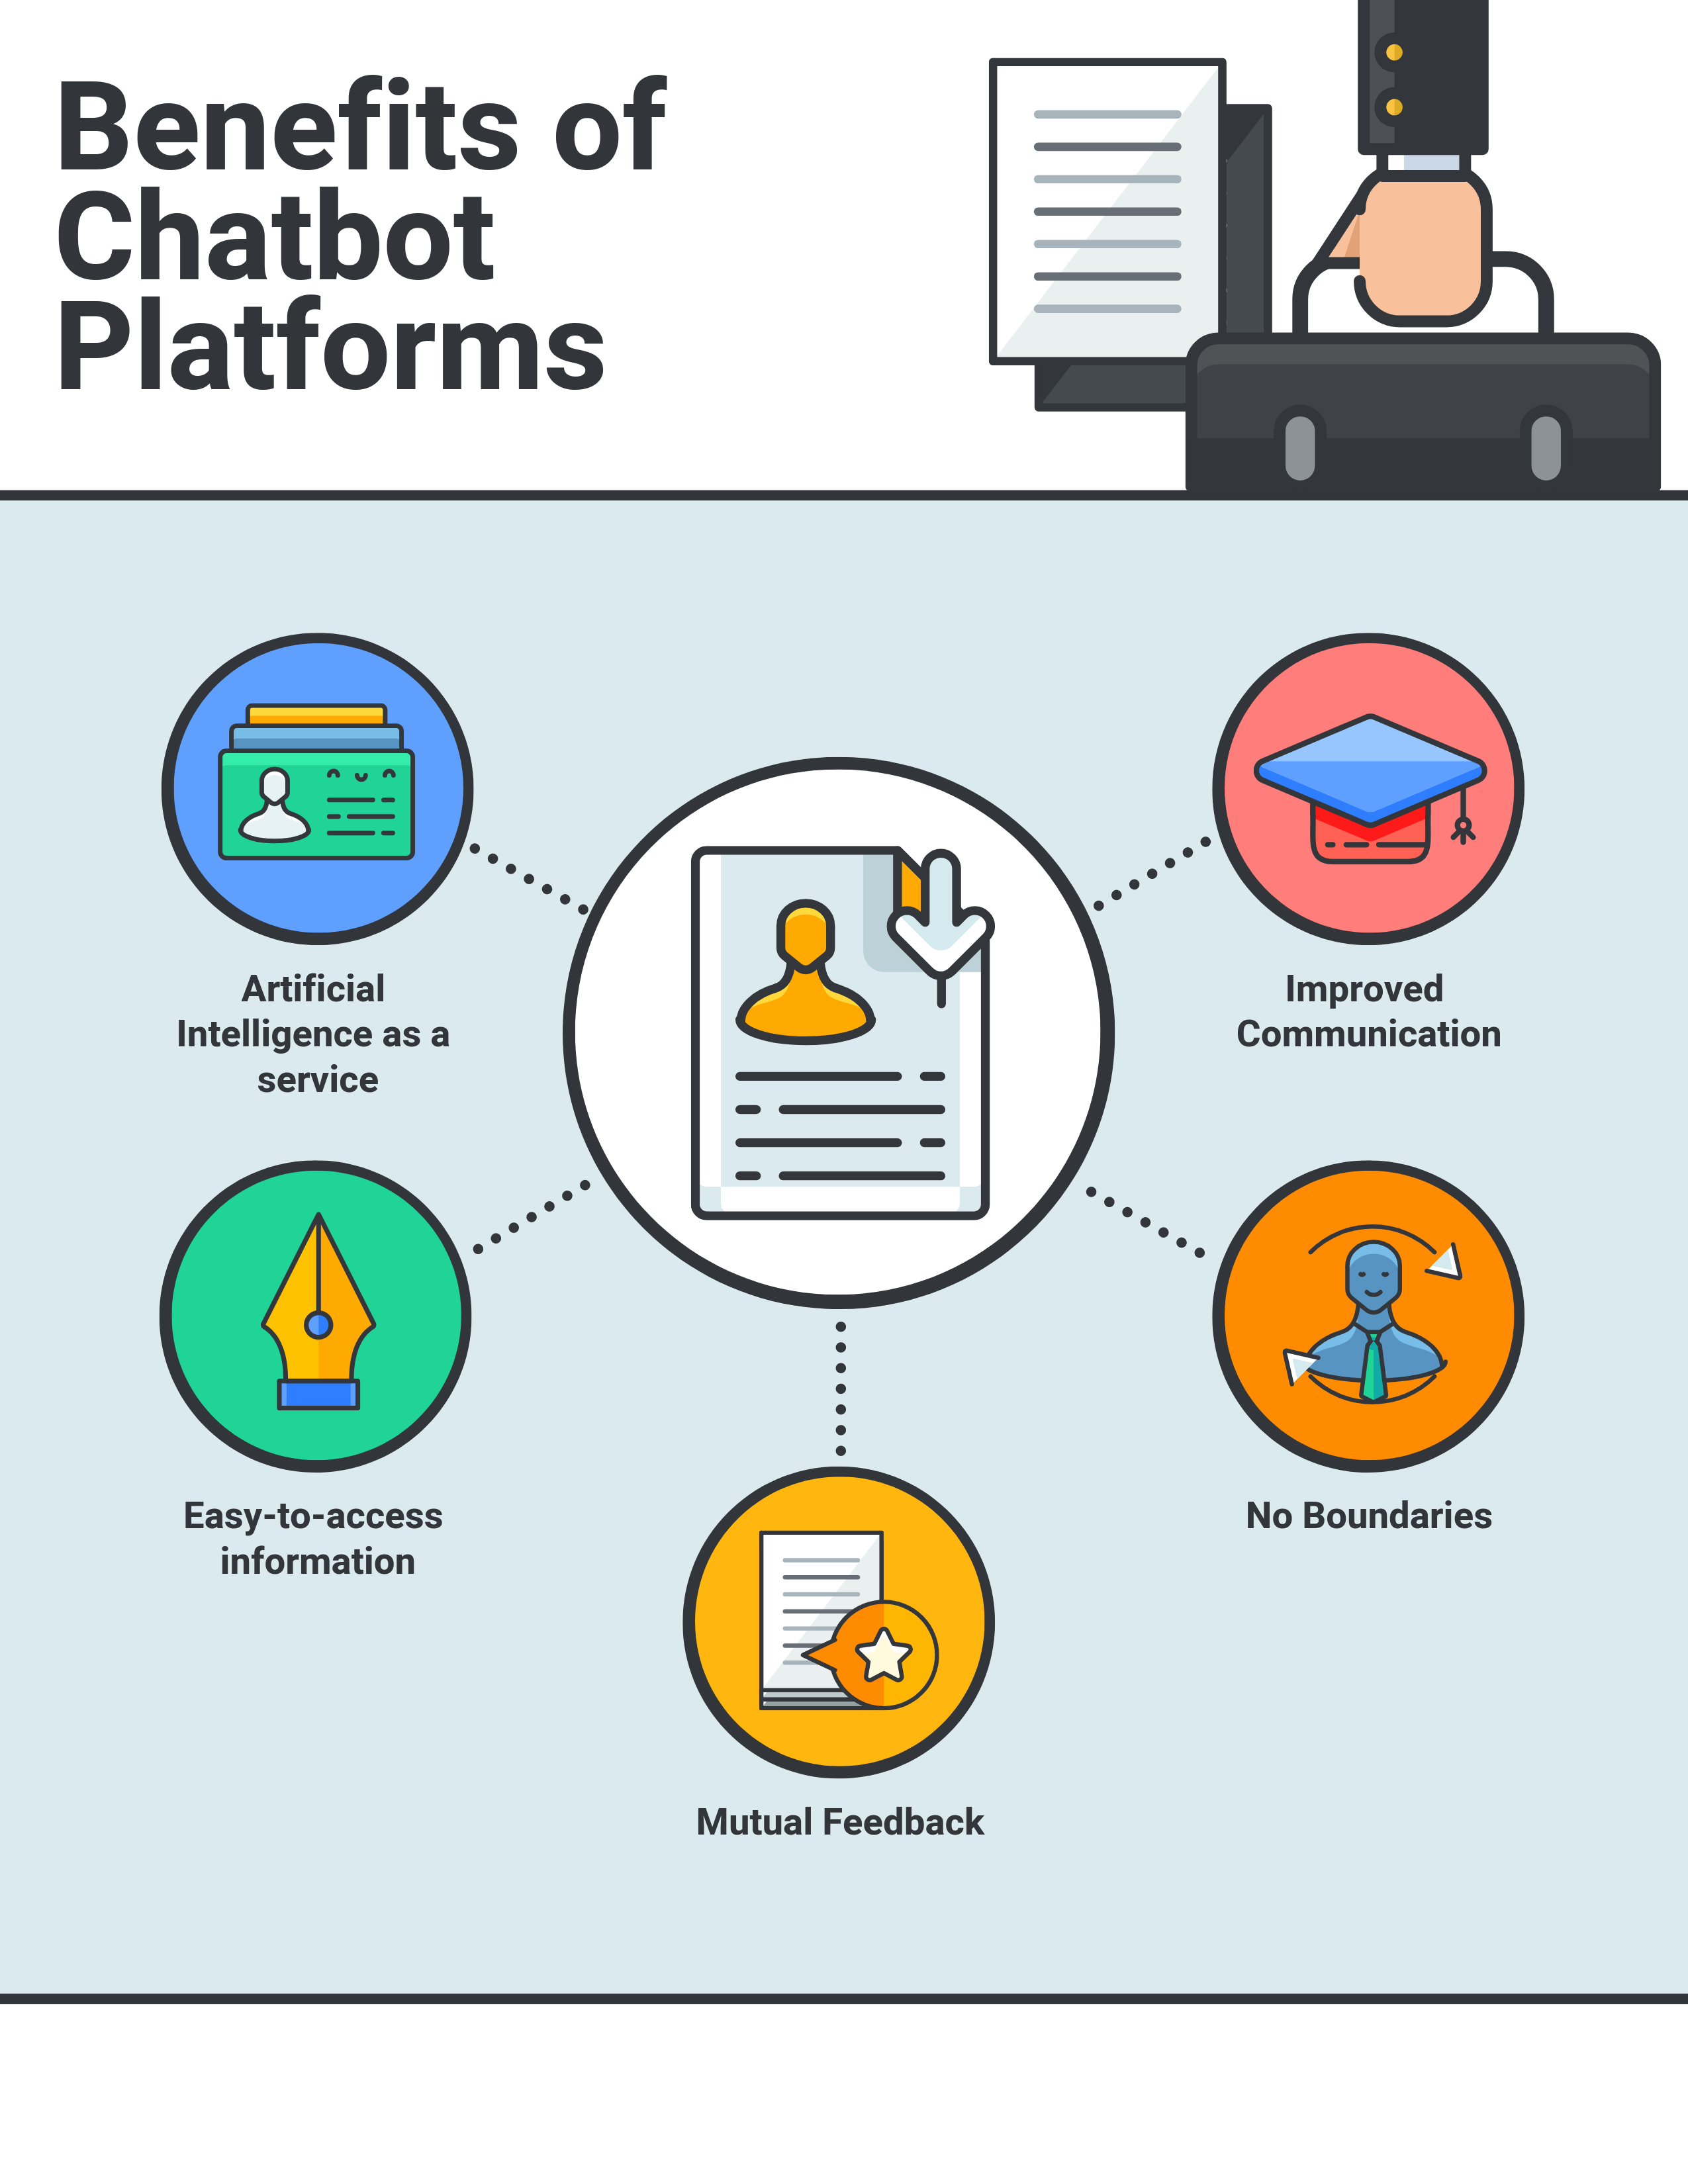 What are the Benefits of Chatbot Platforms